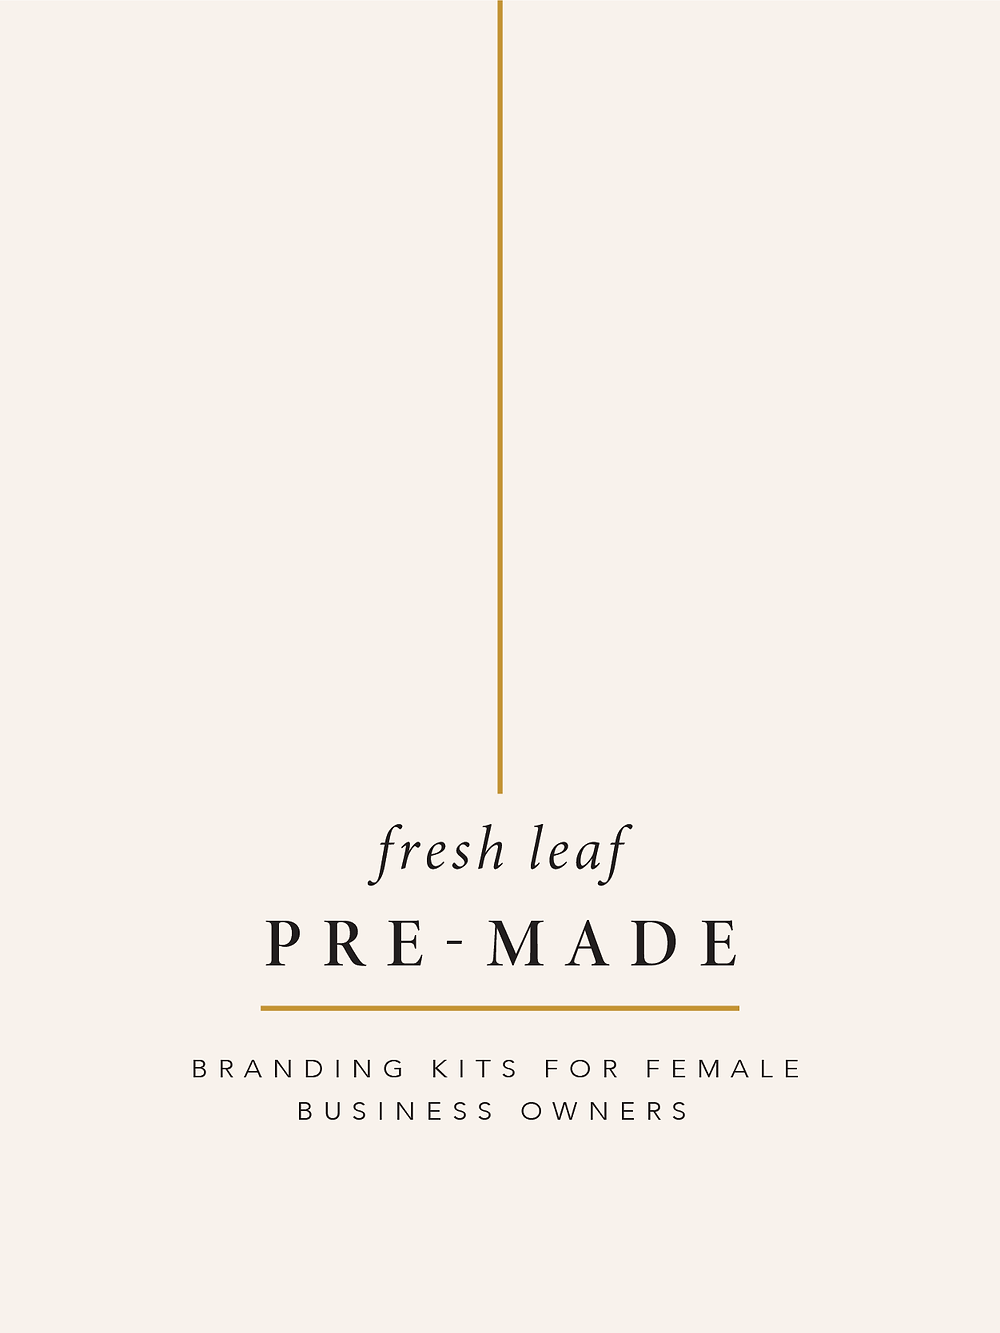 Premade Branding for Female Business Owners by Fresh Leaf Creative | Brand Identity Design & Brand Photographer Dorset & Surrey